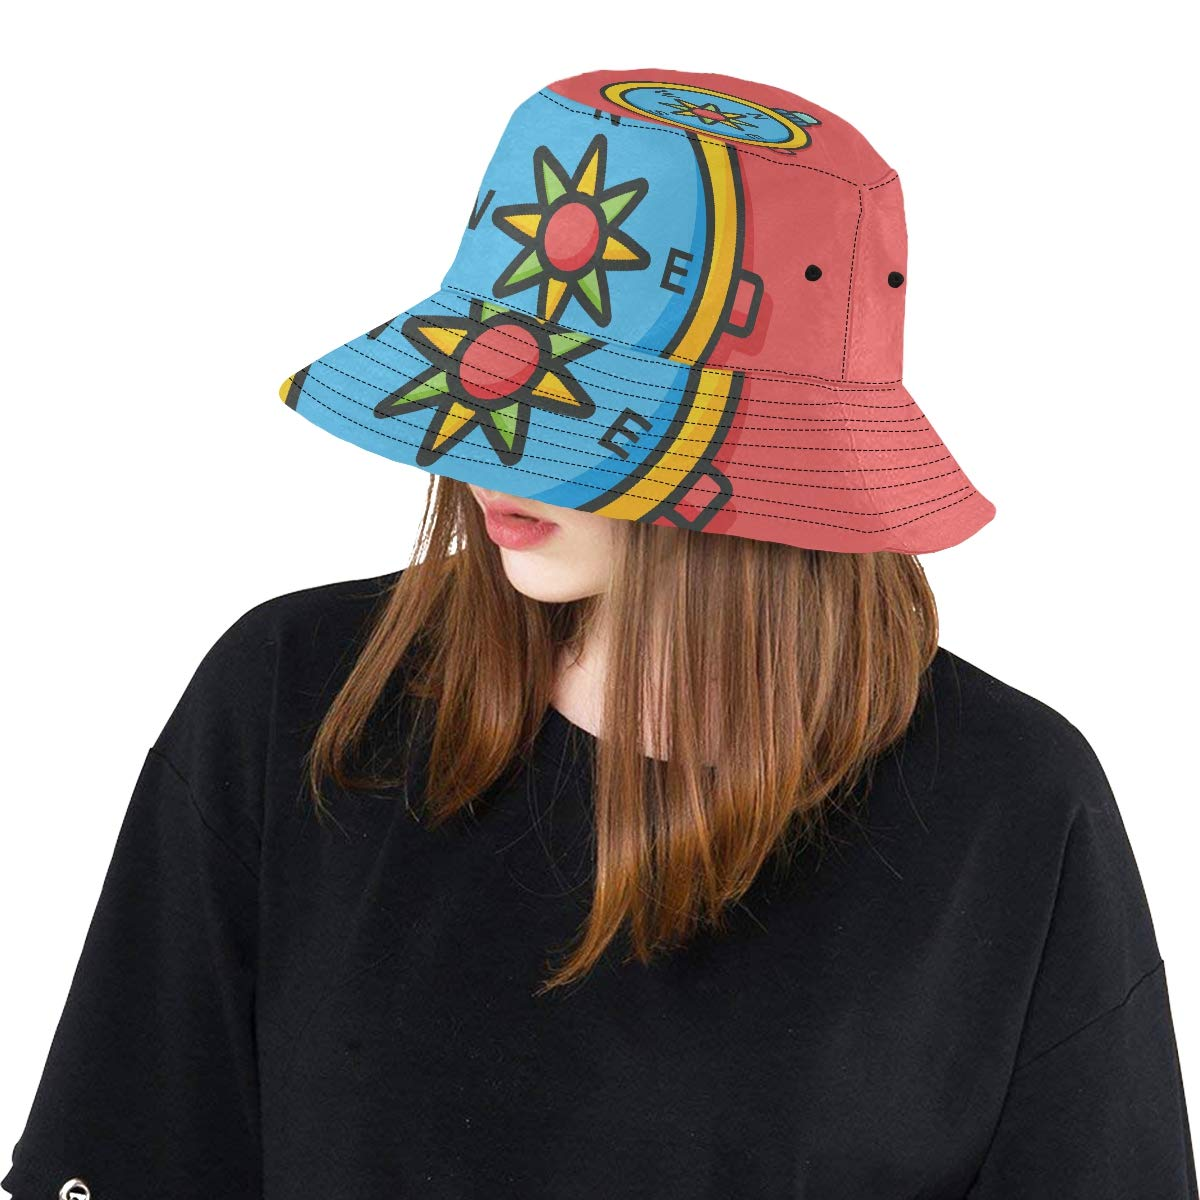 Old Ancient Nautical Ship Anchor Campass New Summer Unisex Cotton Fashion Fishing Sun Bucket Hats for Kid Teens Women and Men with Customize Top Packable Fisherman Cap for Outdoor Travel